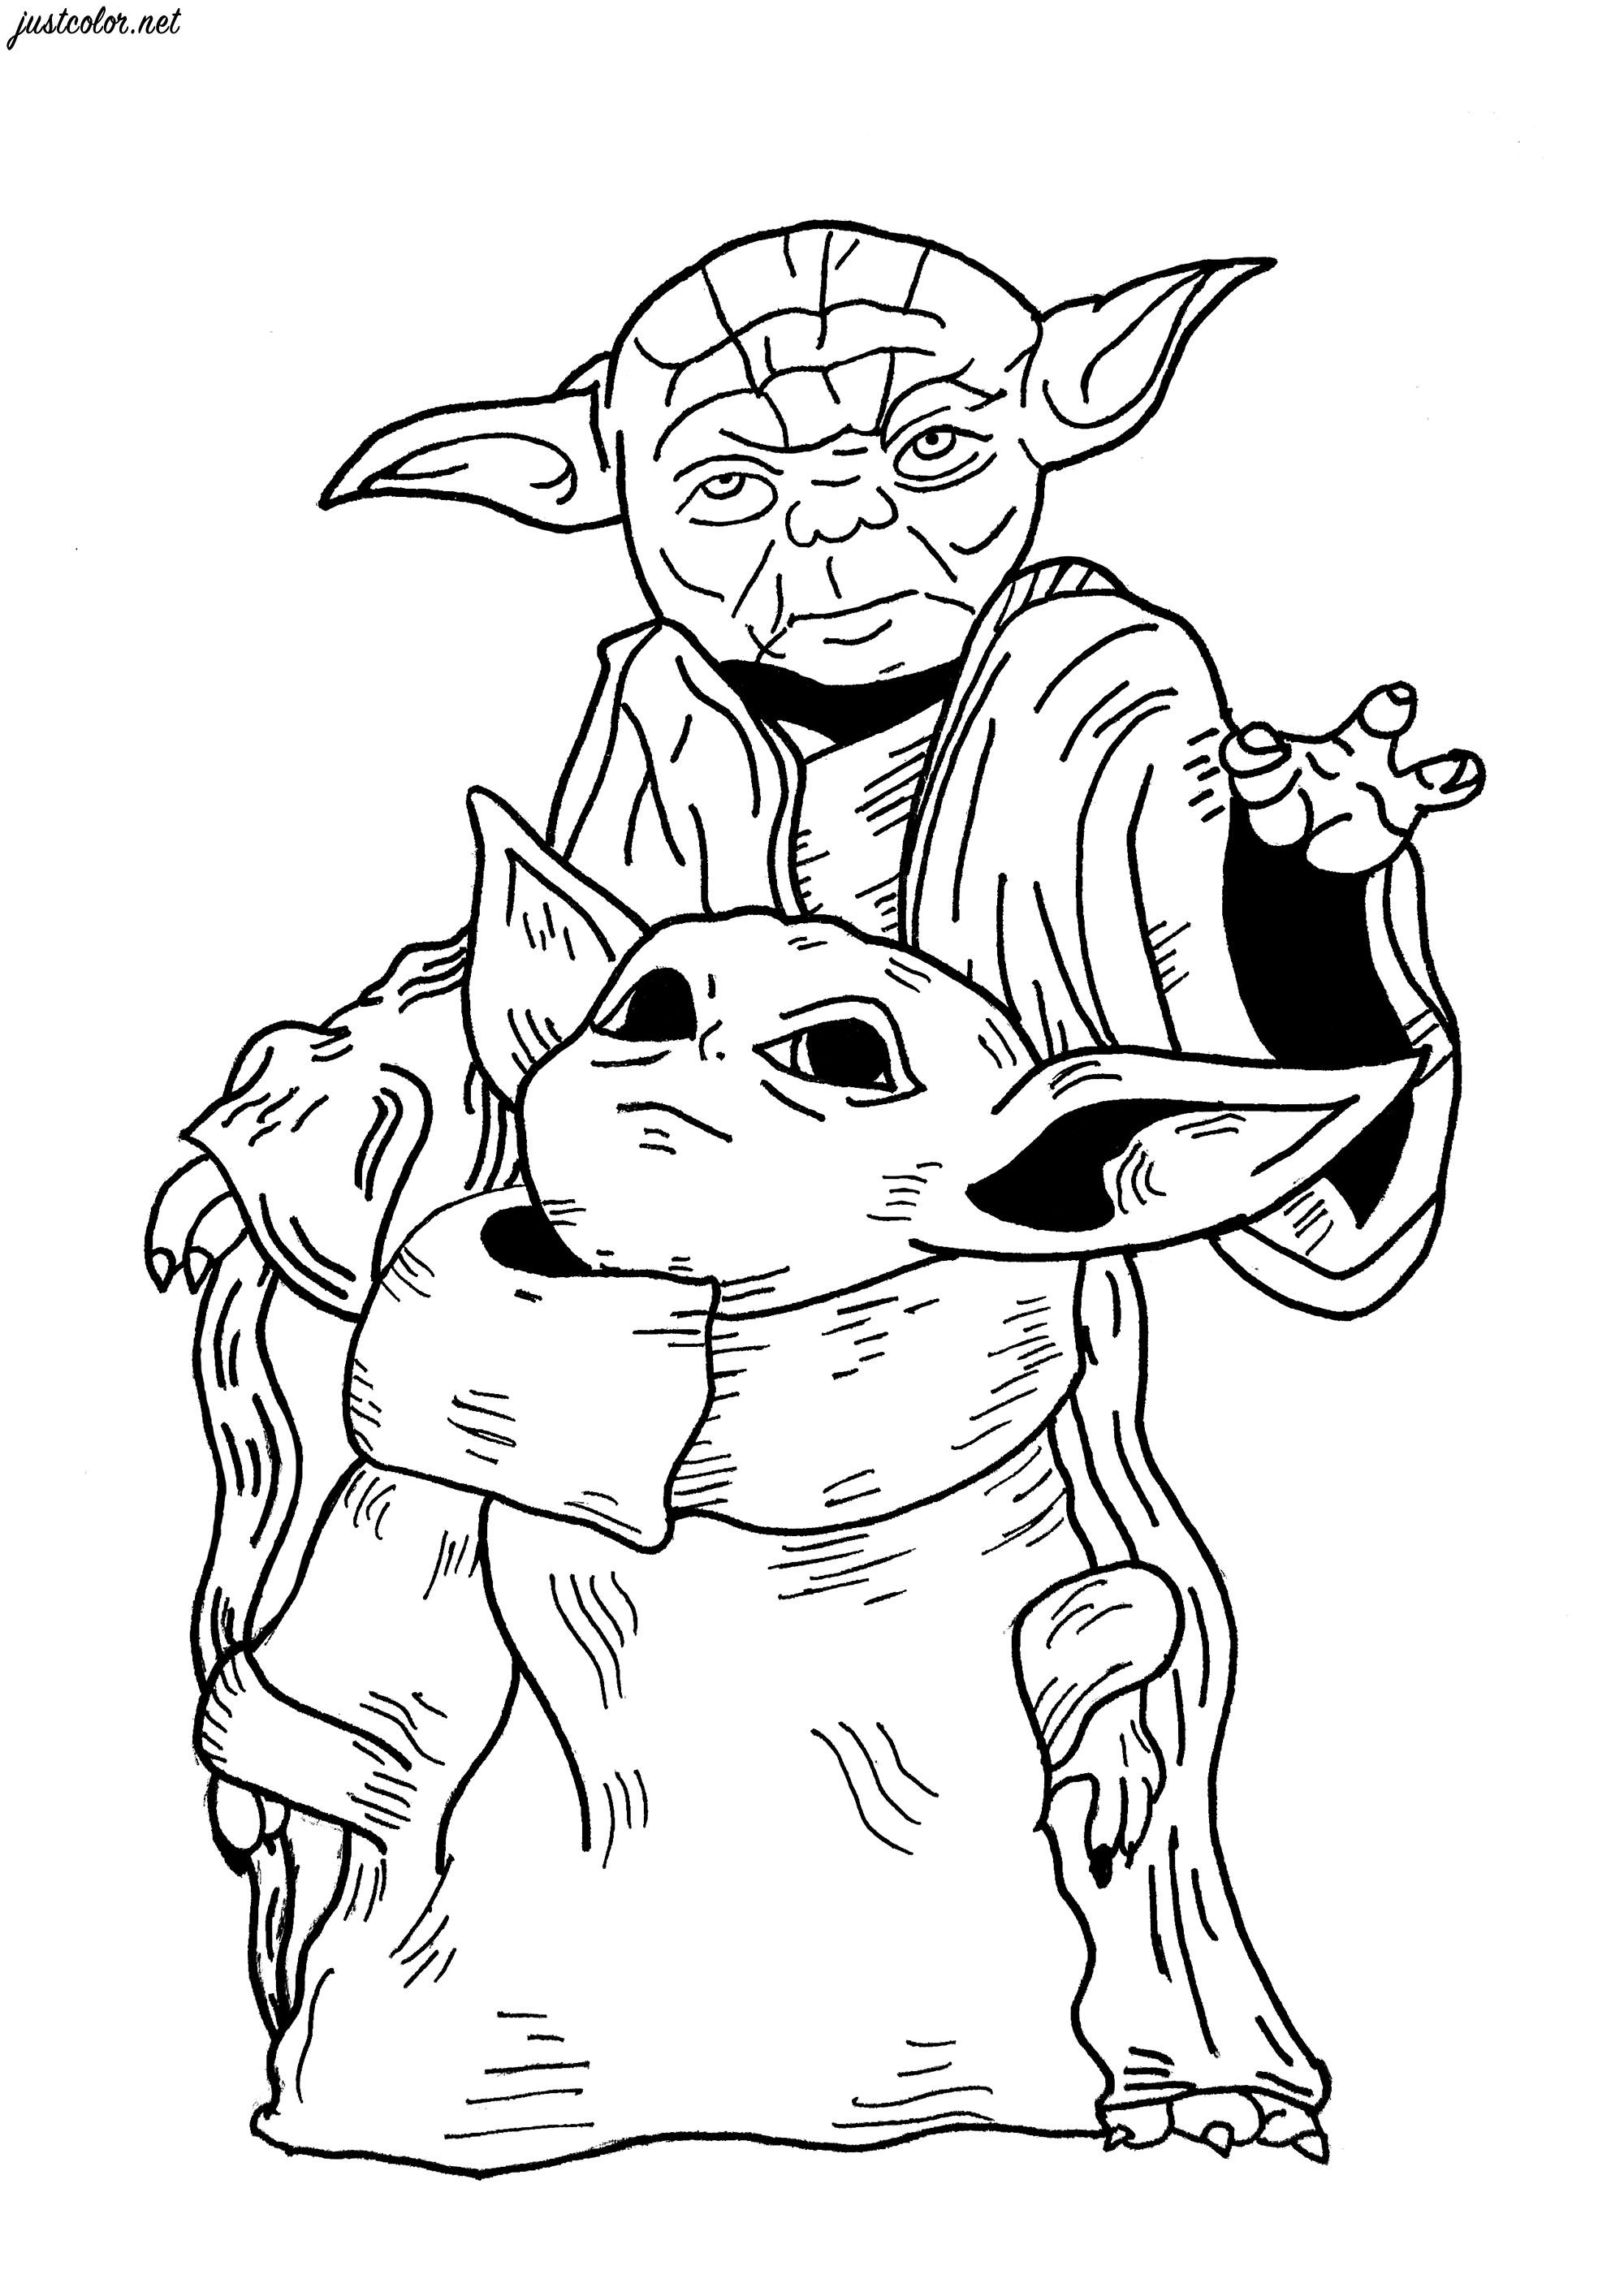 An Original Star Wars Fan Art Coloring Page With Baby Yoda From The Mandalorian Star Wa In 2020 Star Wars Coloring Book Star Wars Coloring Sheet Star Coloring Pages